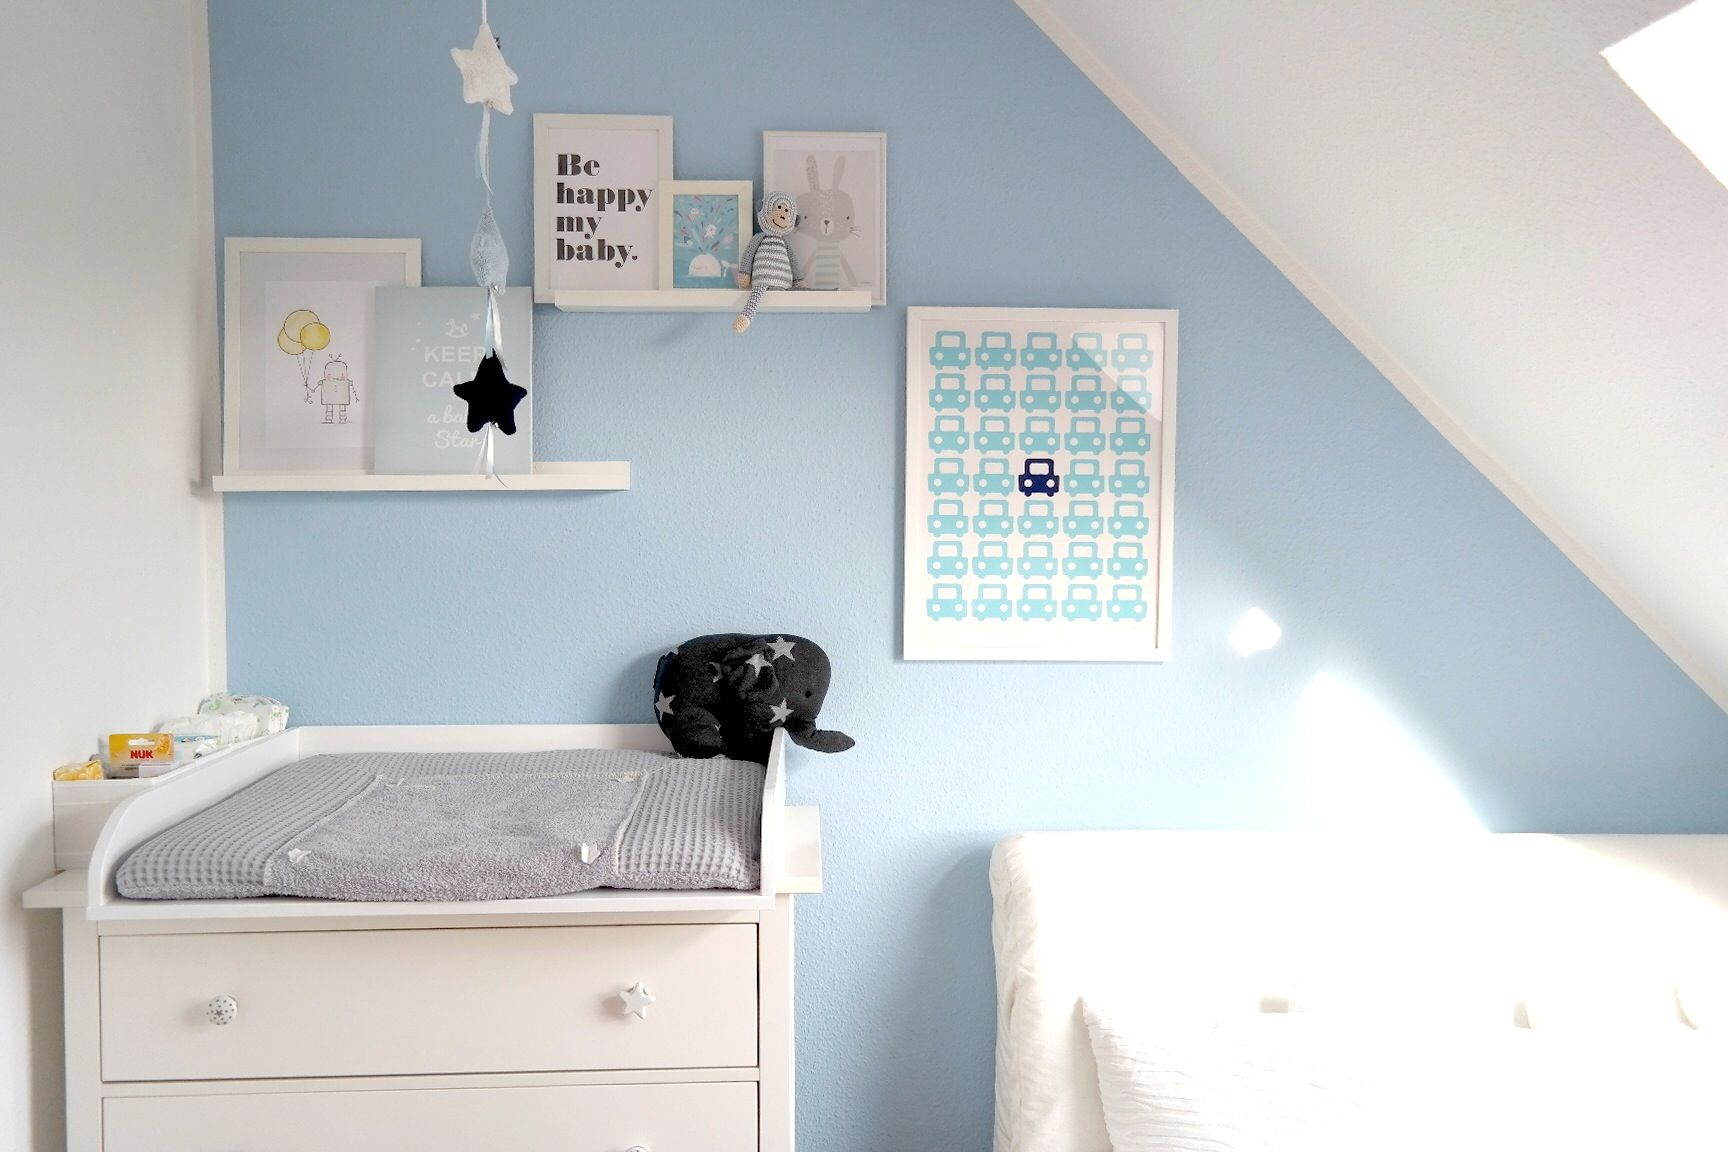 babyzimmer bilder collage wand elefant mobilee baby 39 s only ikea hemnes wickelkommode koeka. Black Bedroom Furniture Sets. Home Design Ideas